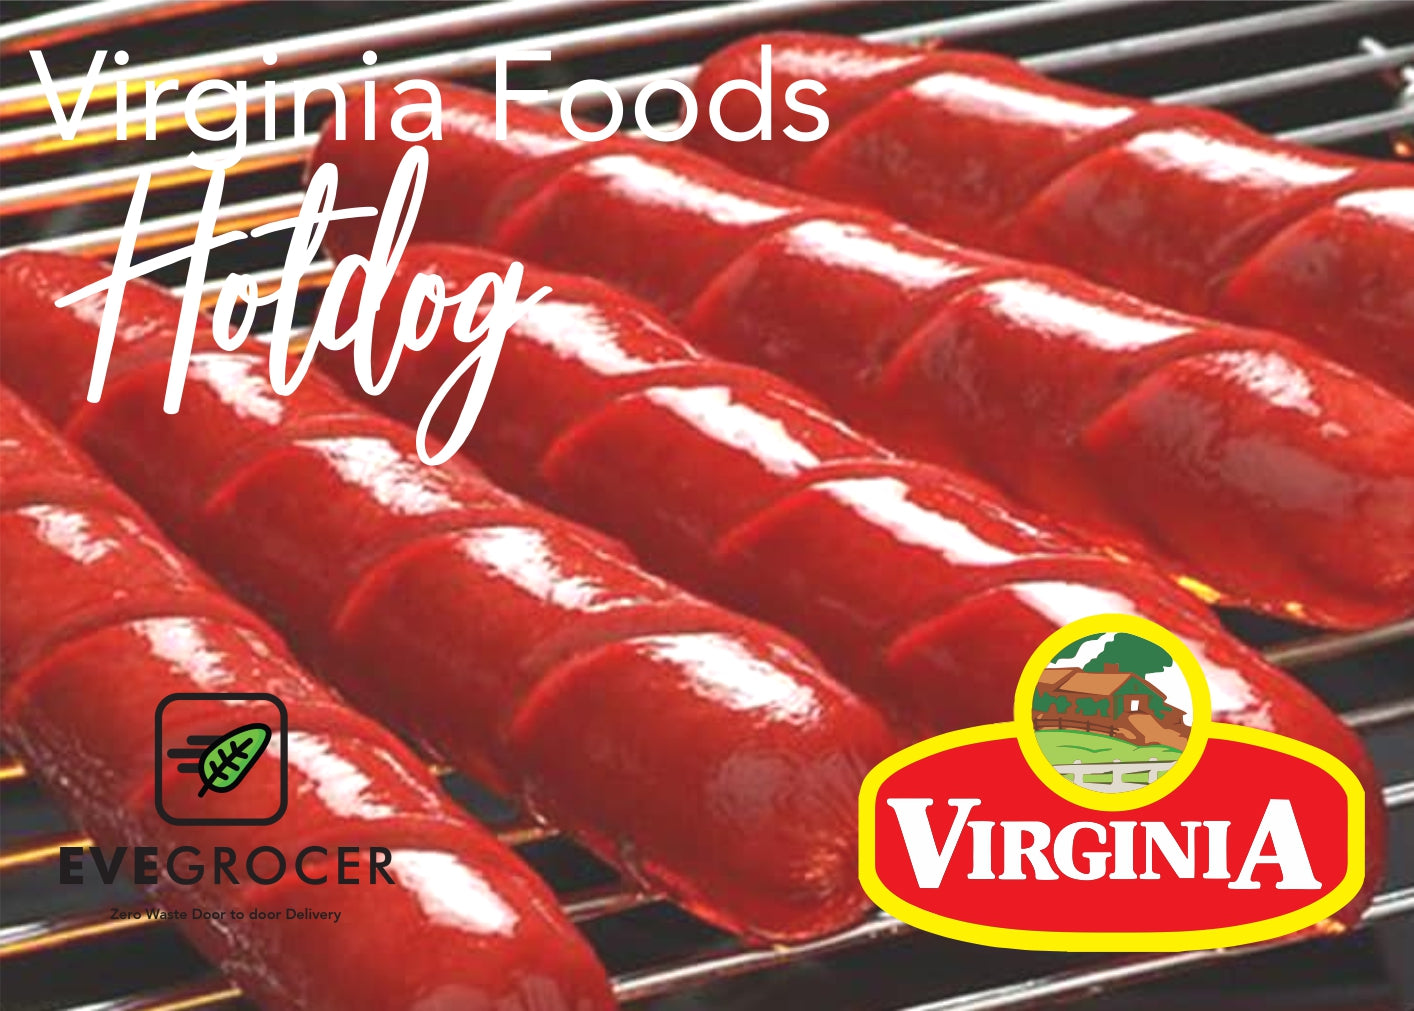 Hotdog - Virginia Foods